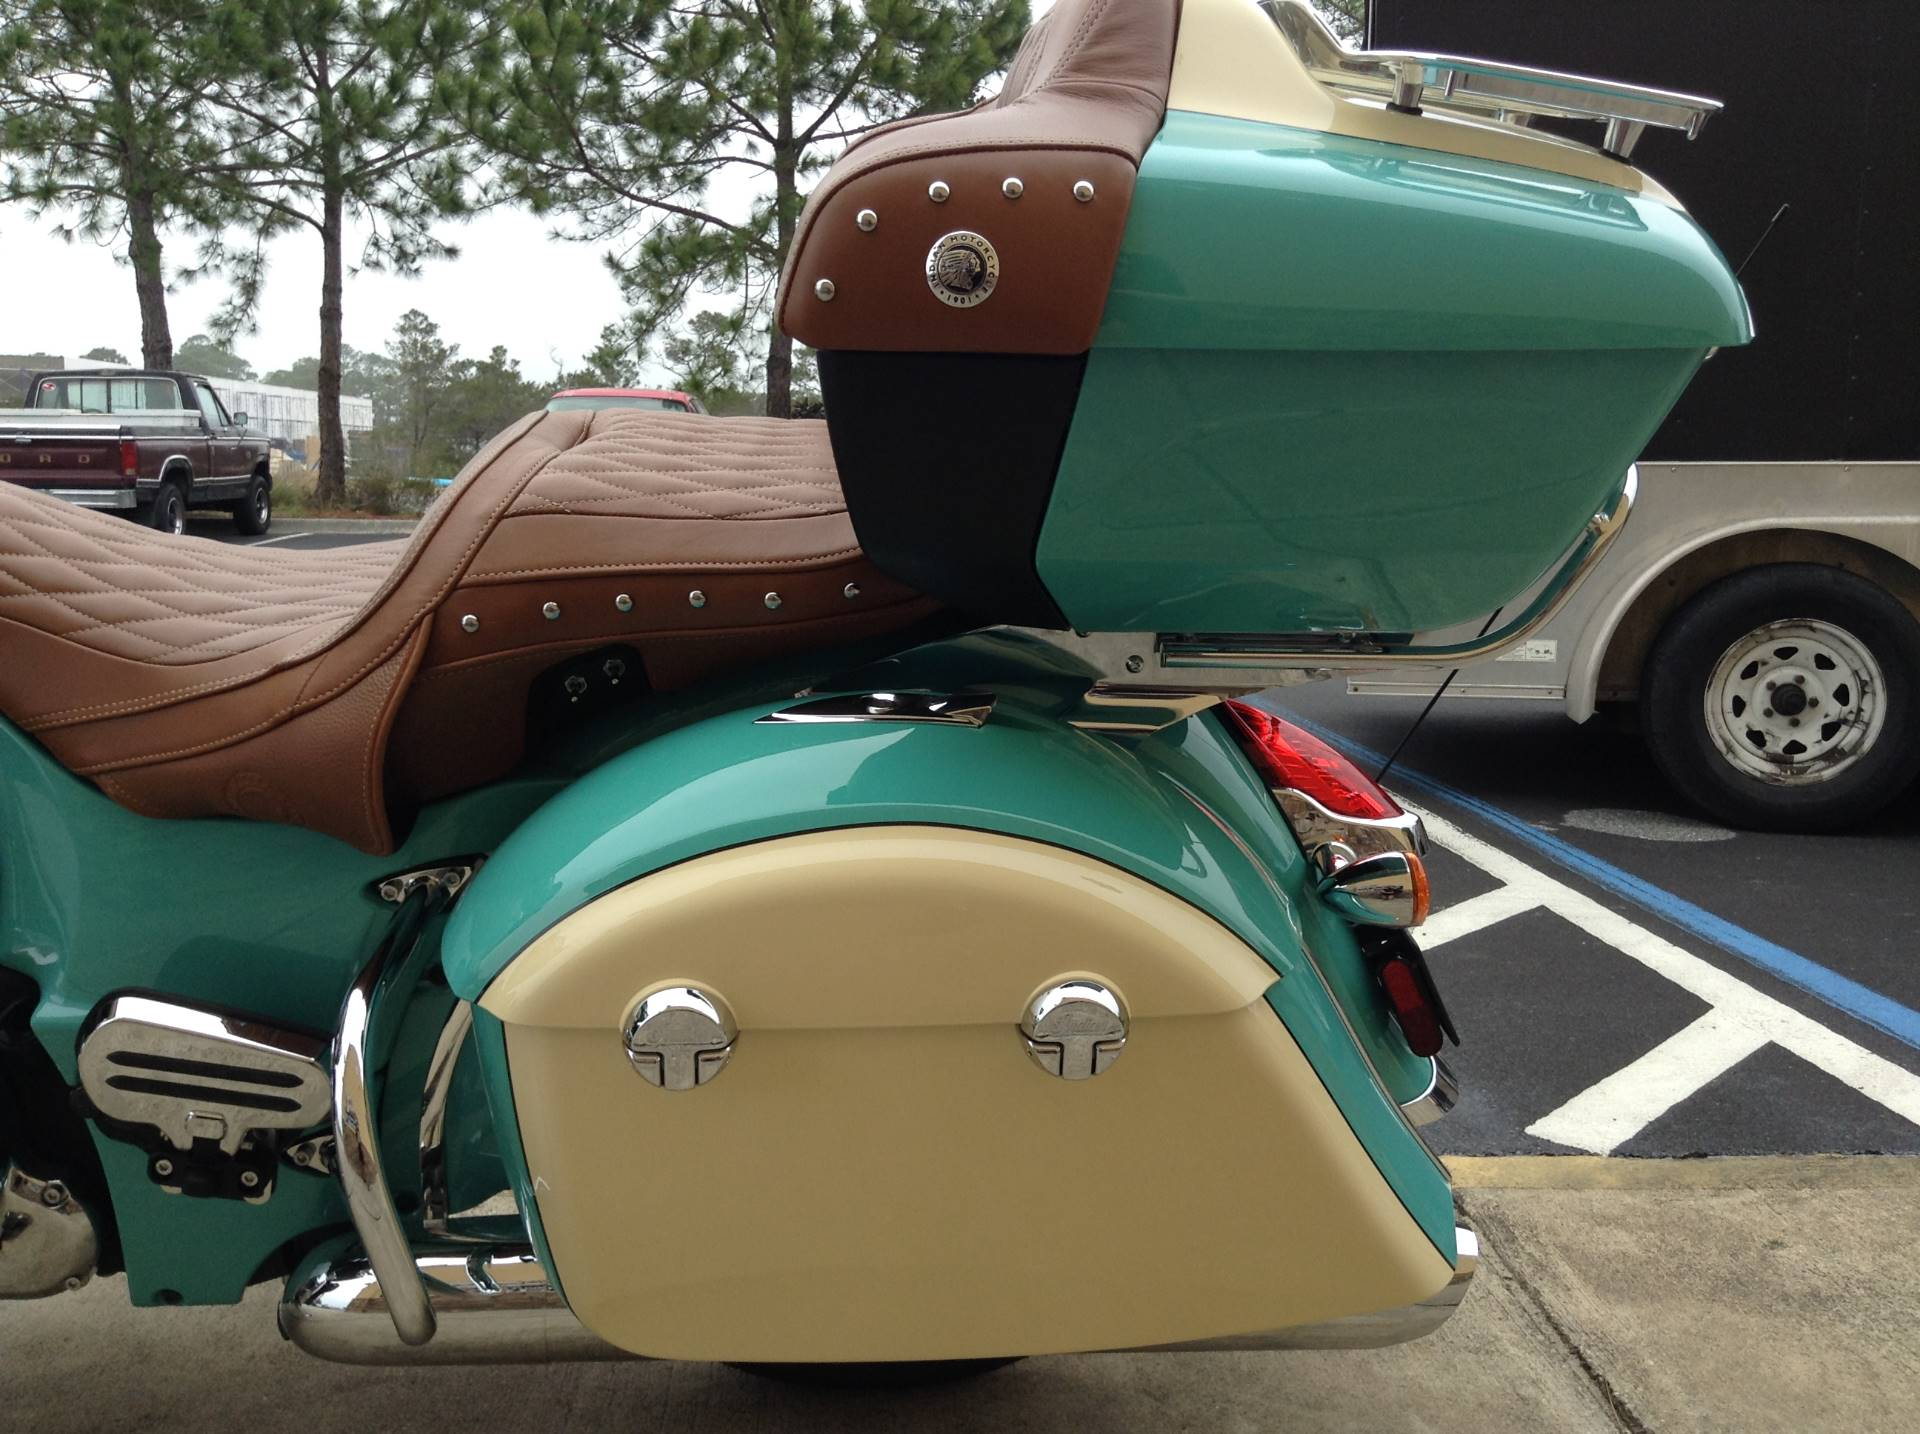 2020 Indian ROAD MASTER ICON SERIES in Panama City Beach, Florida - Photo 9